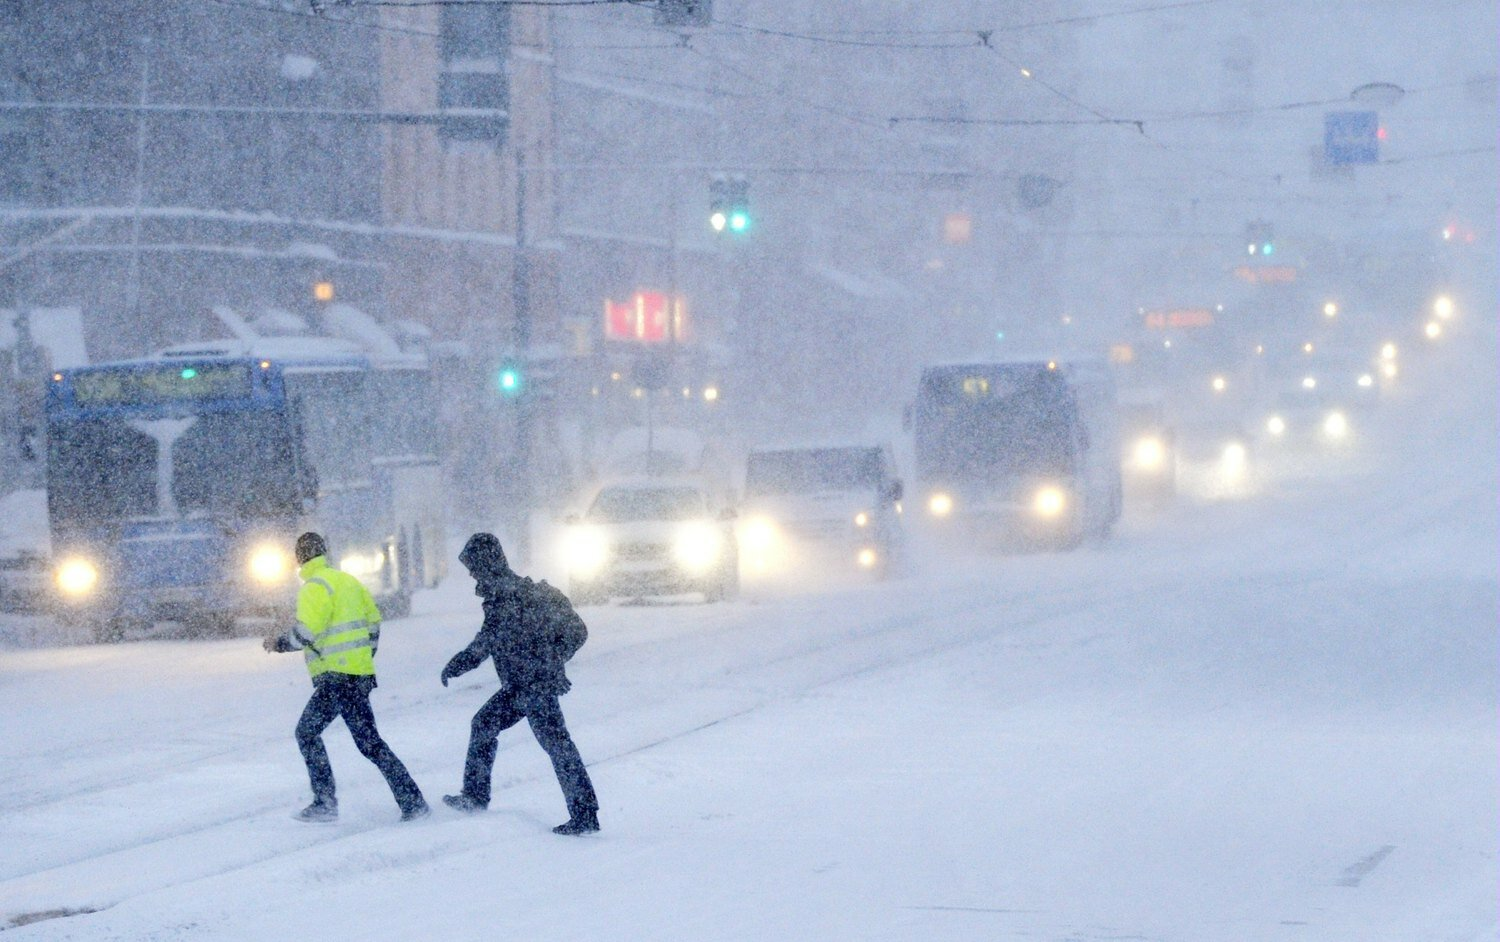 People cross a snow covered road on February 3, 2012 in Helsinki. Temperatures plunged to new lows in Europe where a week-long cold snap has now claimed more than 220 lives and forecasters warned that the big freeze would tighten its grip at the weekend. AFP PHOTO / LEHTIKUVA / Vesa Moilanen *** FINLAND OUT ***